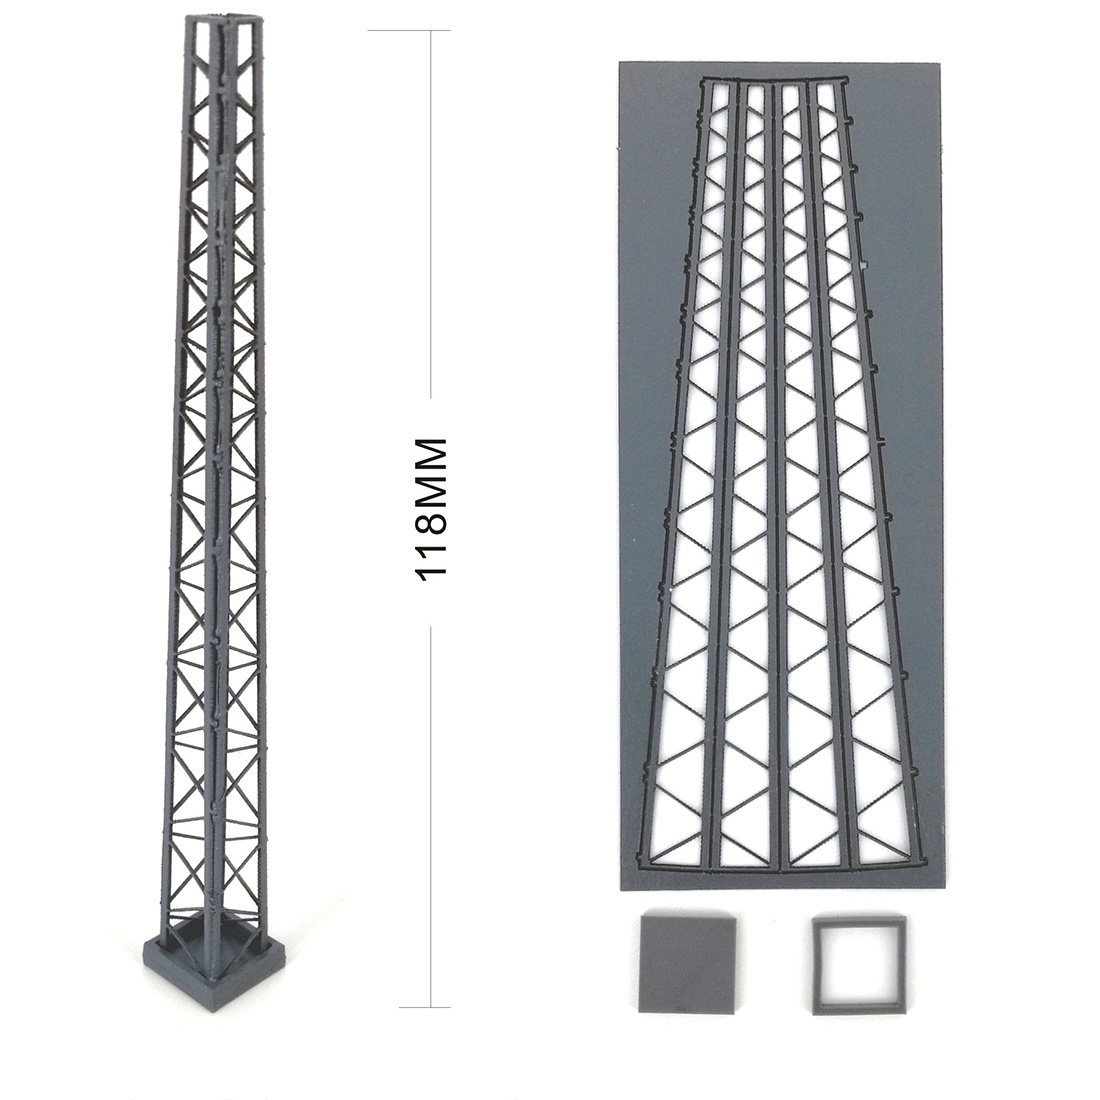 New 1Pc 1:87 HO Scale Train Railway Scene Decoration Assembly Brackets Model For Sand Table